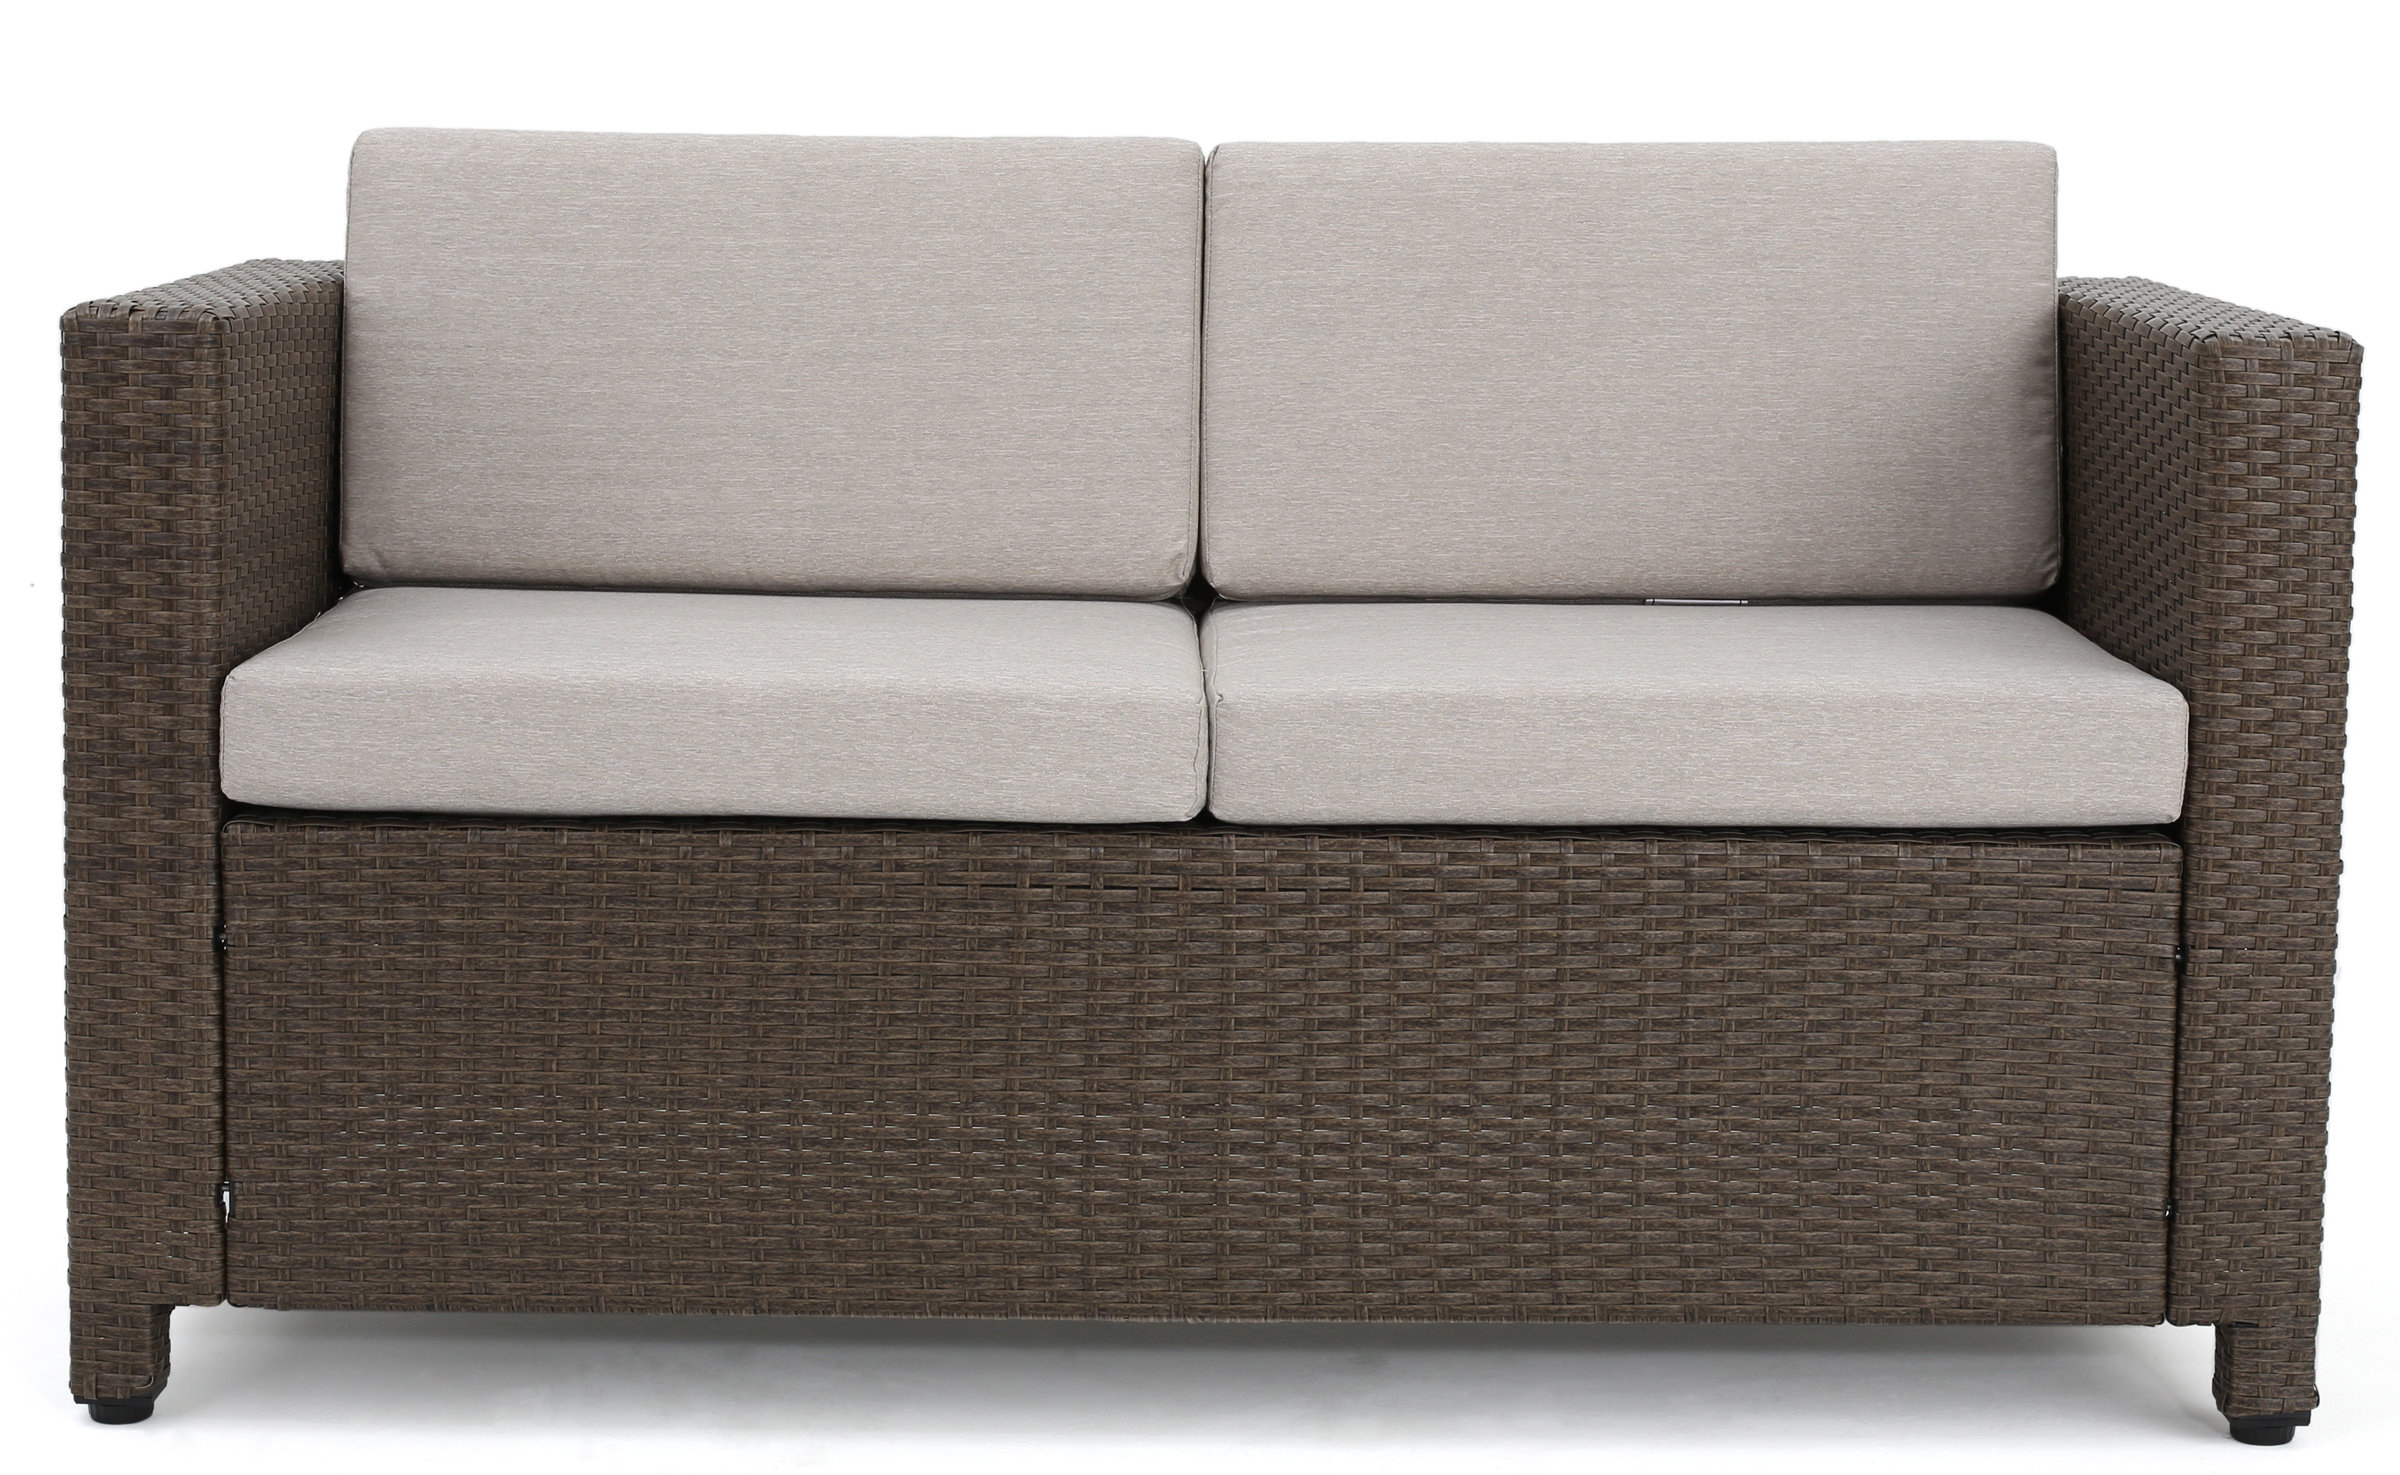 Furst Outdoor Loveseat With Cushions In Best And Newest Mendelson Loveseats With Cushion (View 6 of 20)